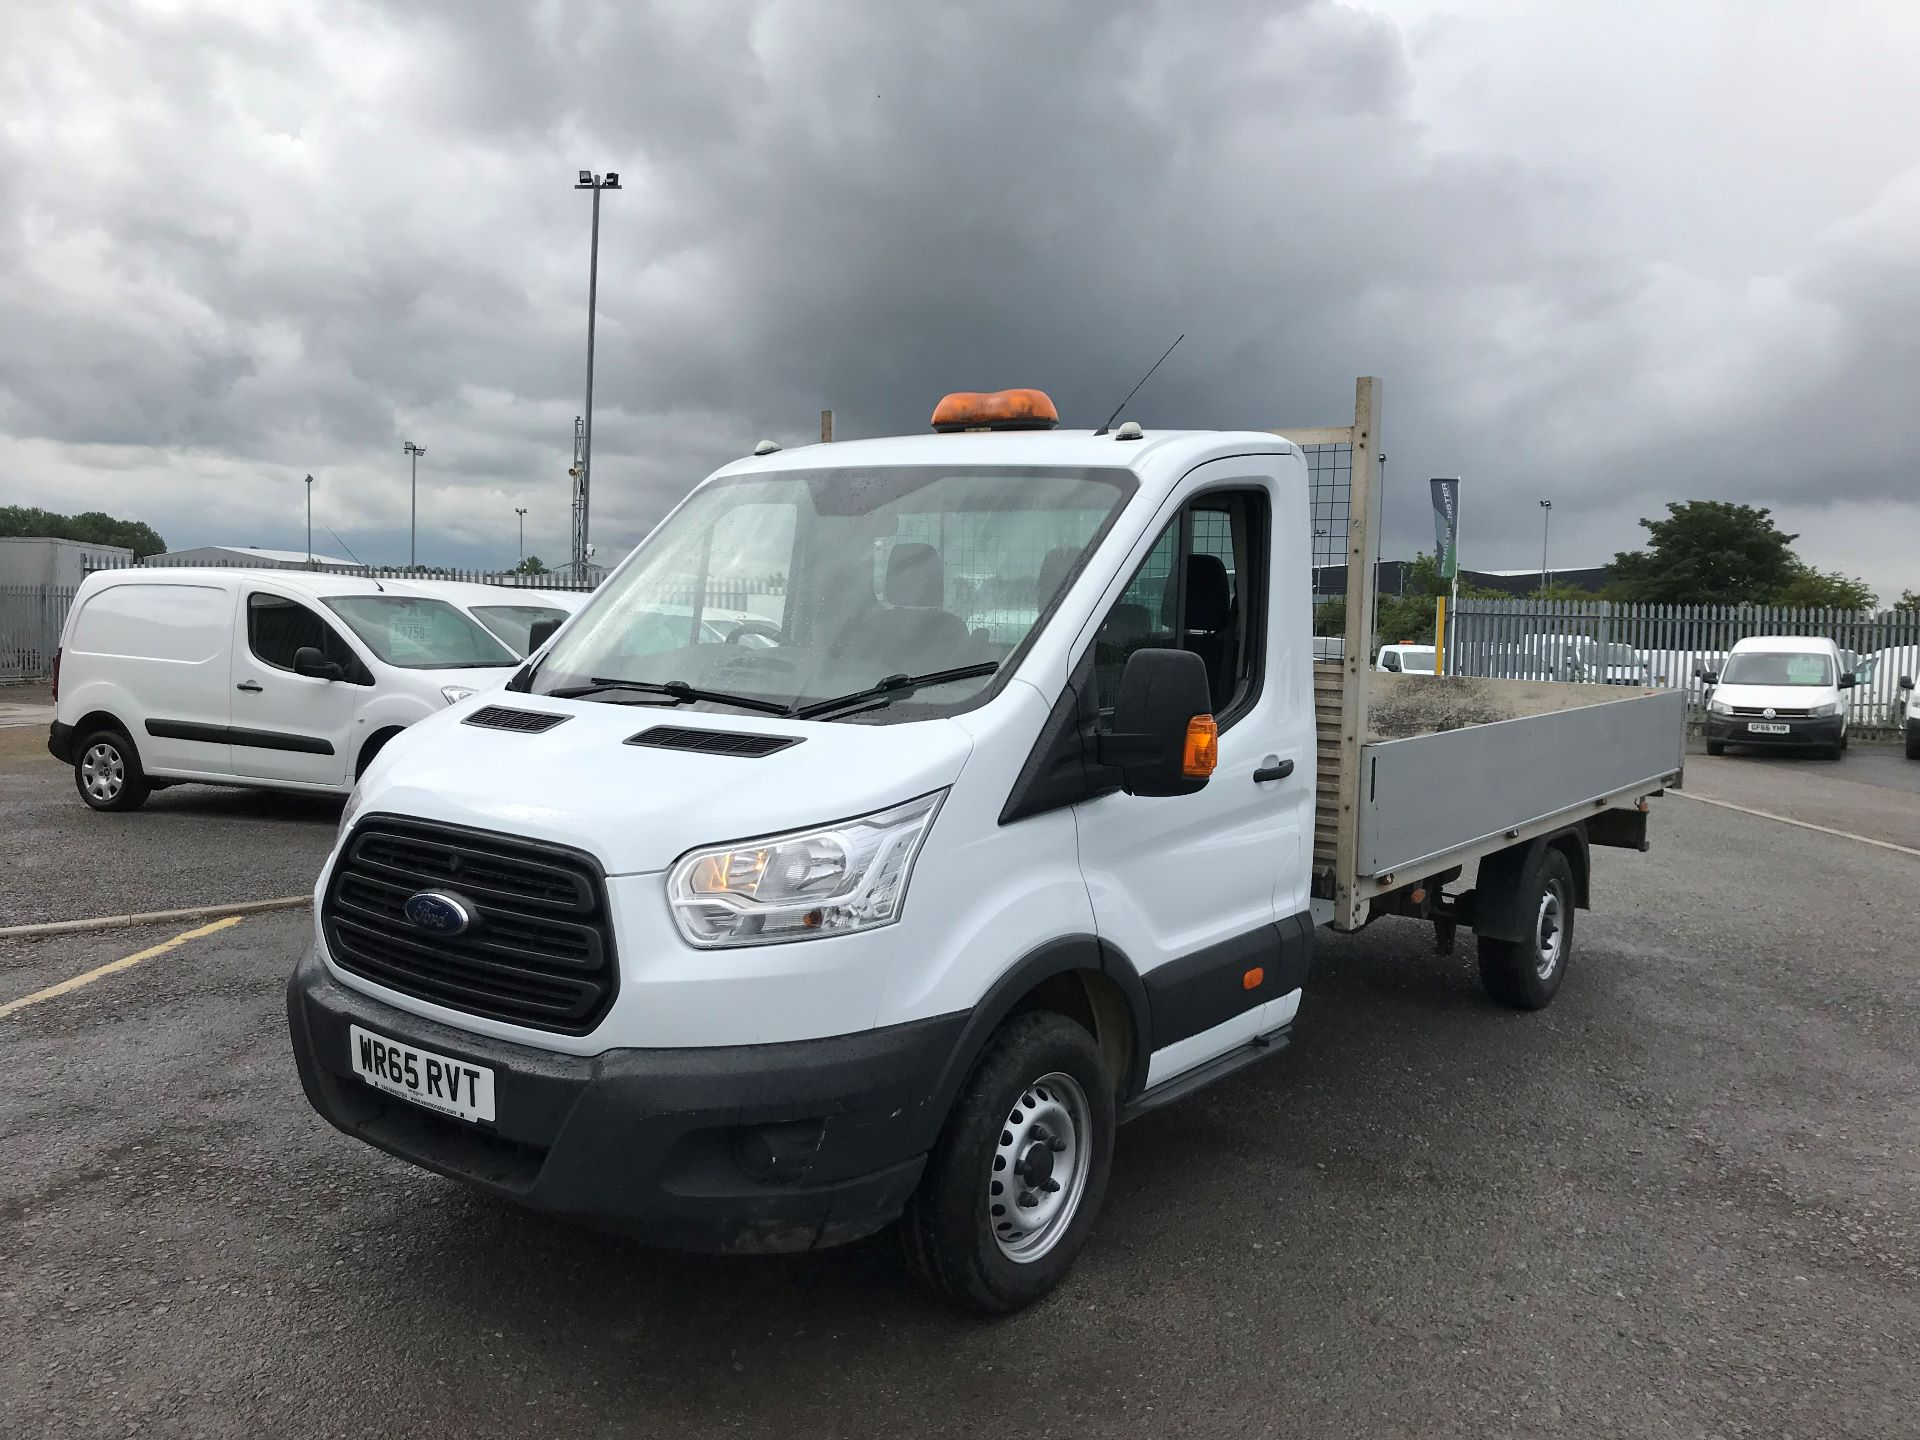 2015 Ford Transit 2.2 Tdci 125Ps Chassis Cab (WR65RVT) Image 8